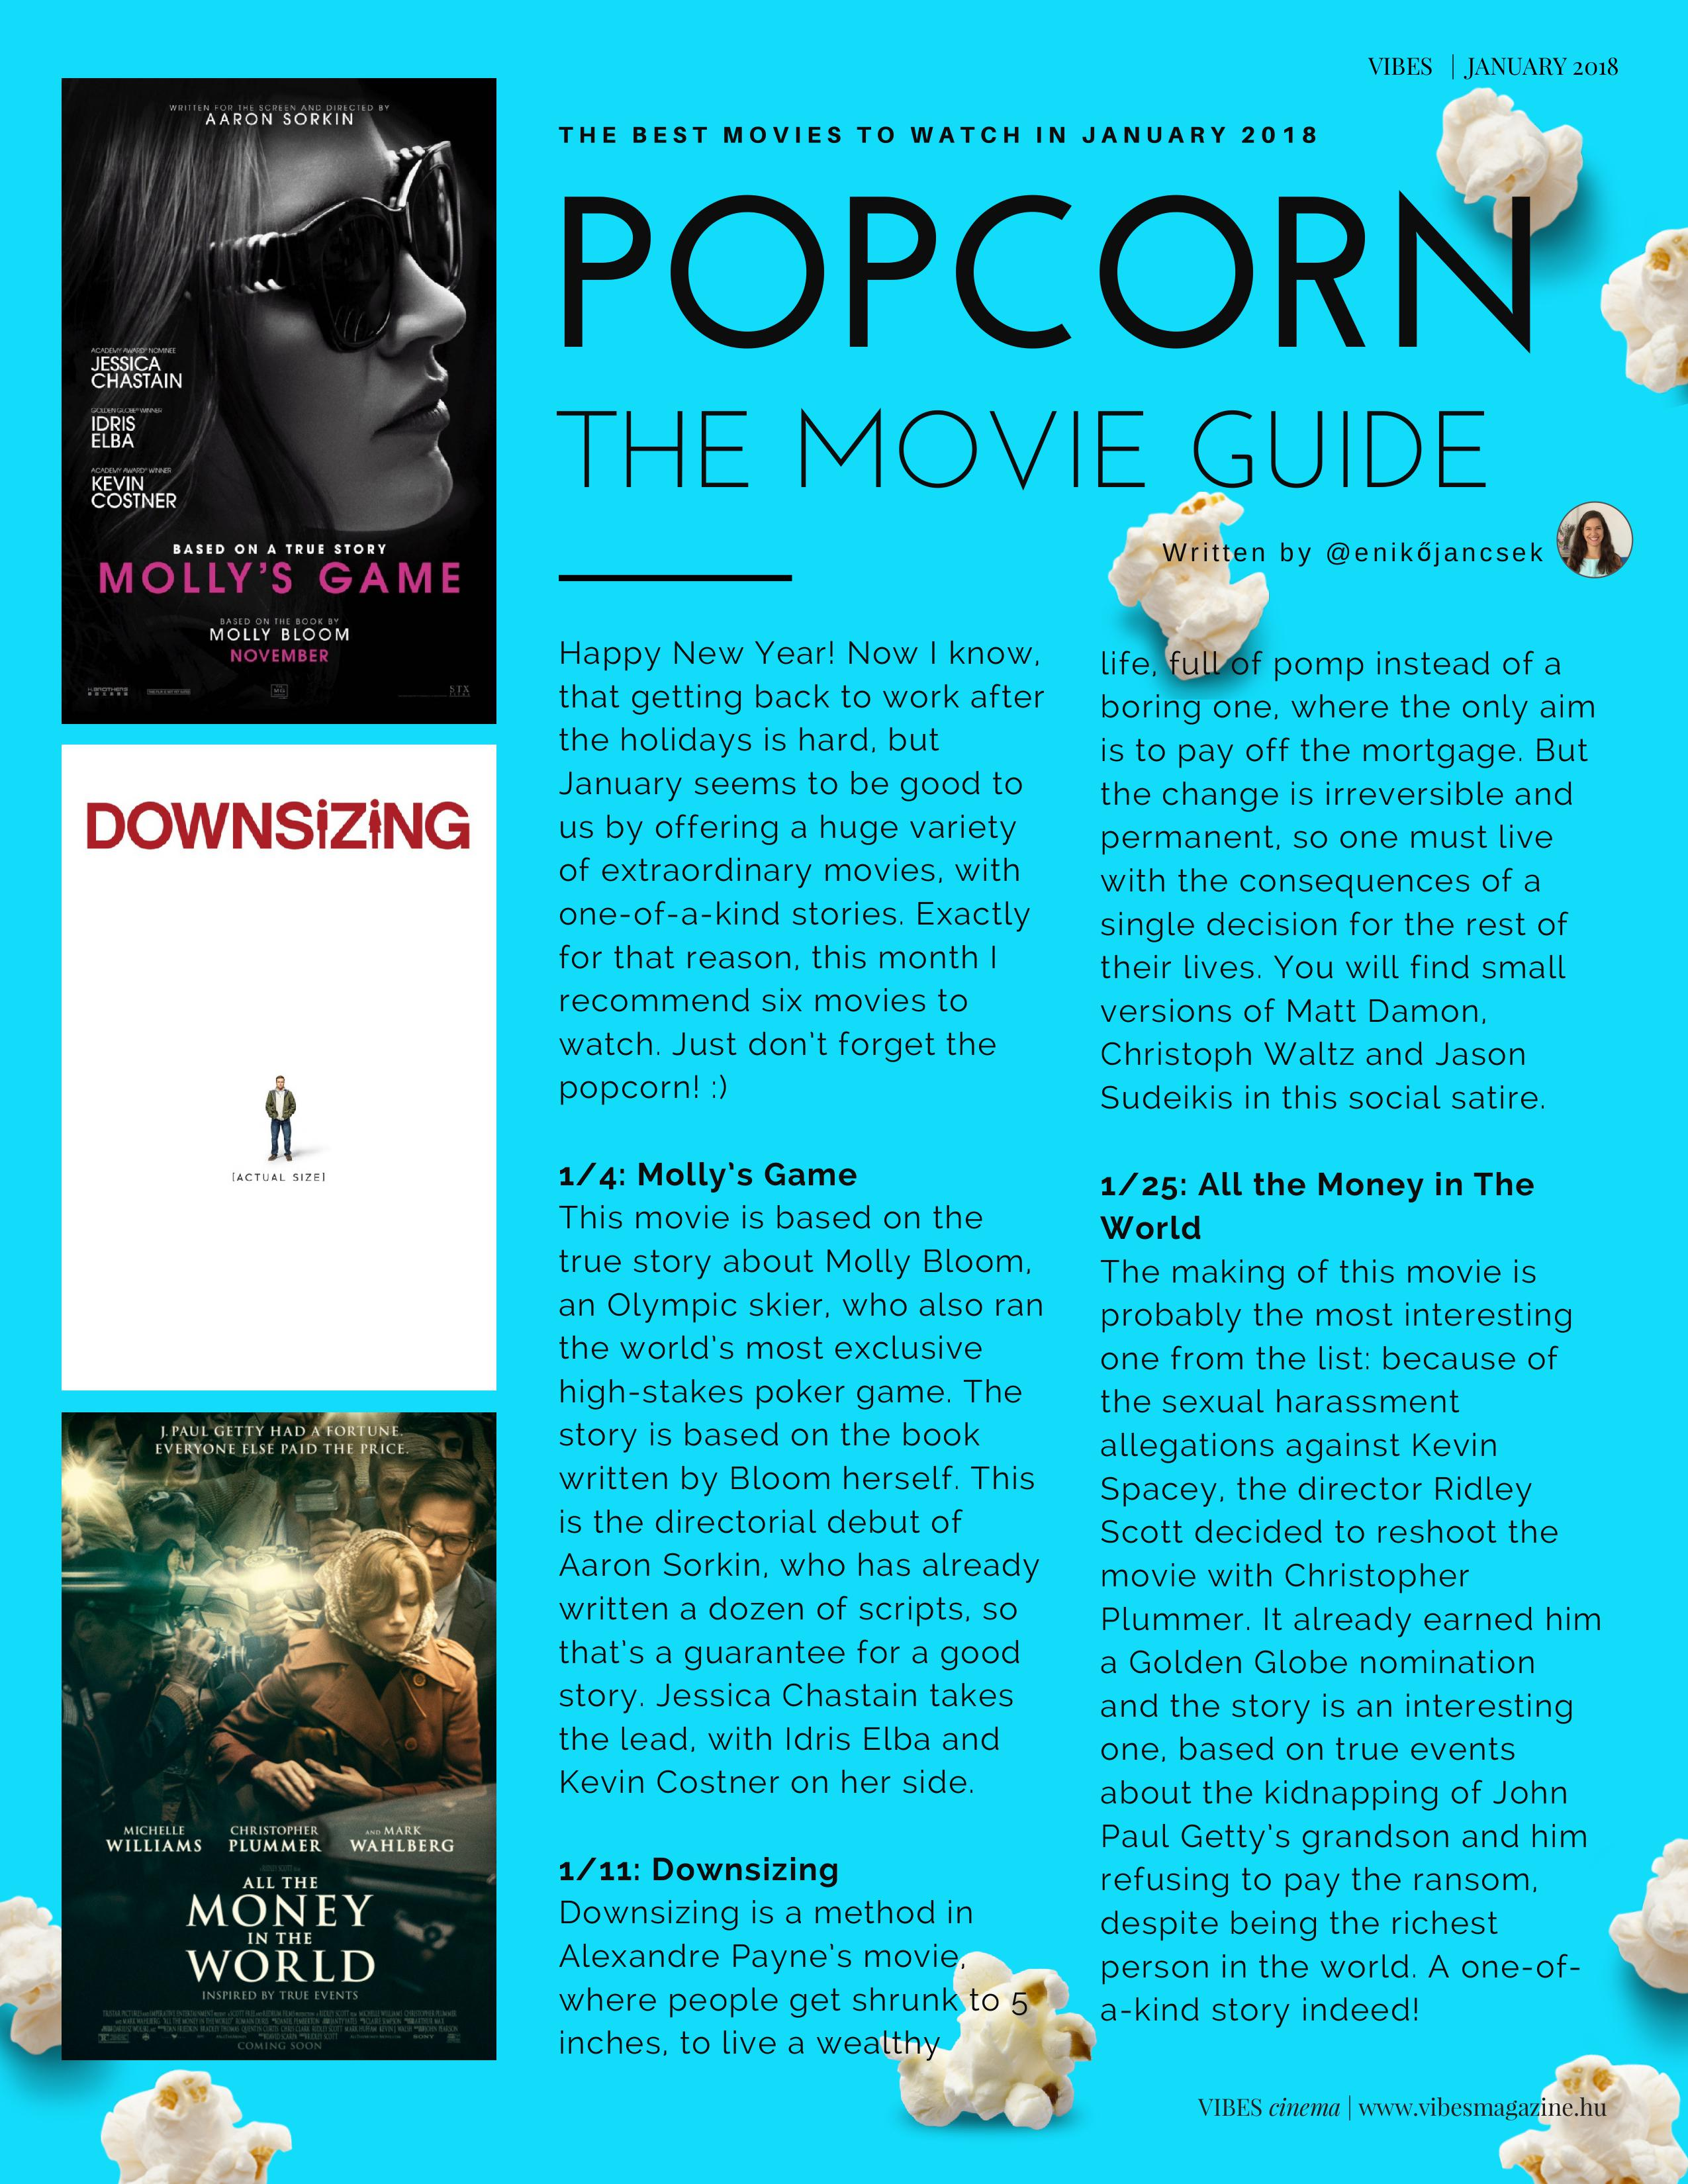 Popcorn - The Movie Guide Vibes January 2018